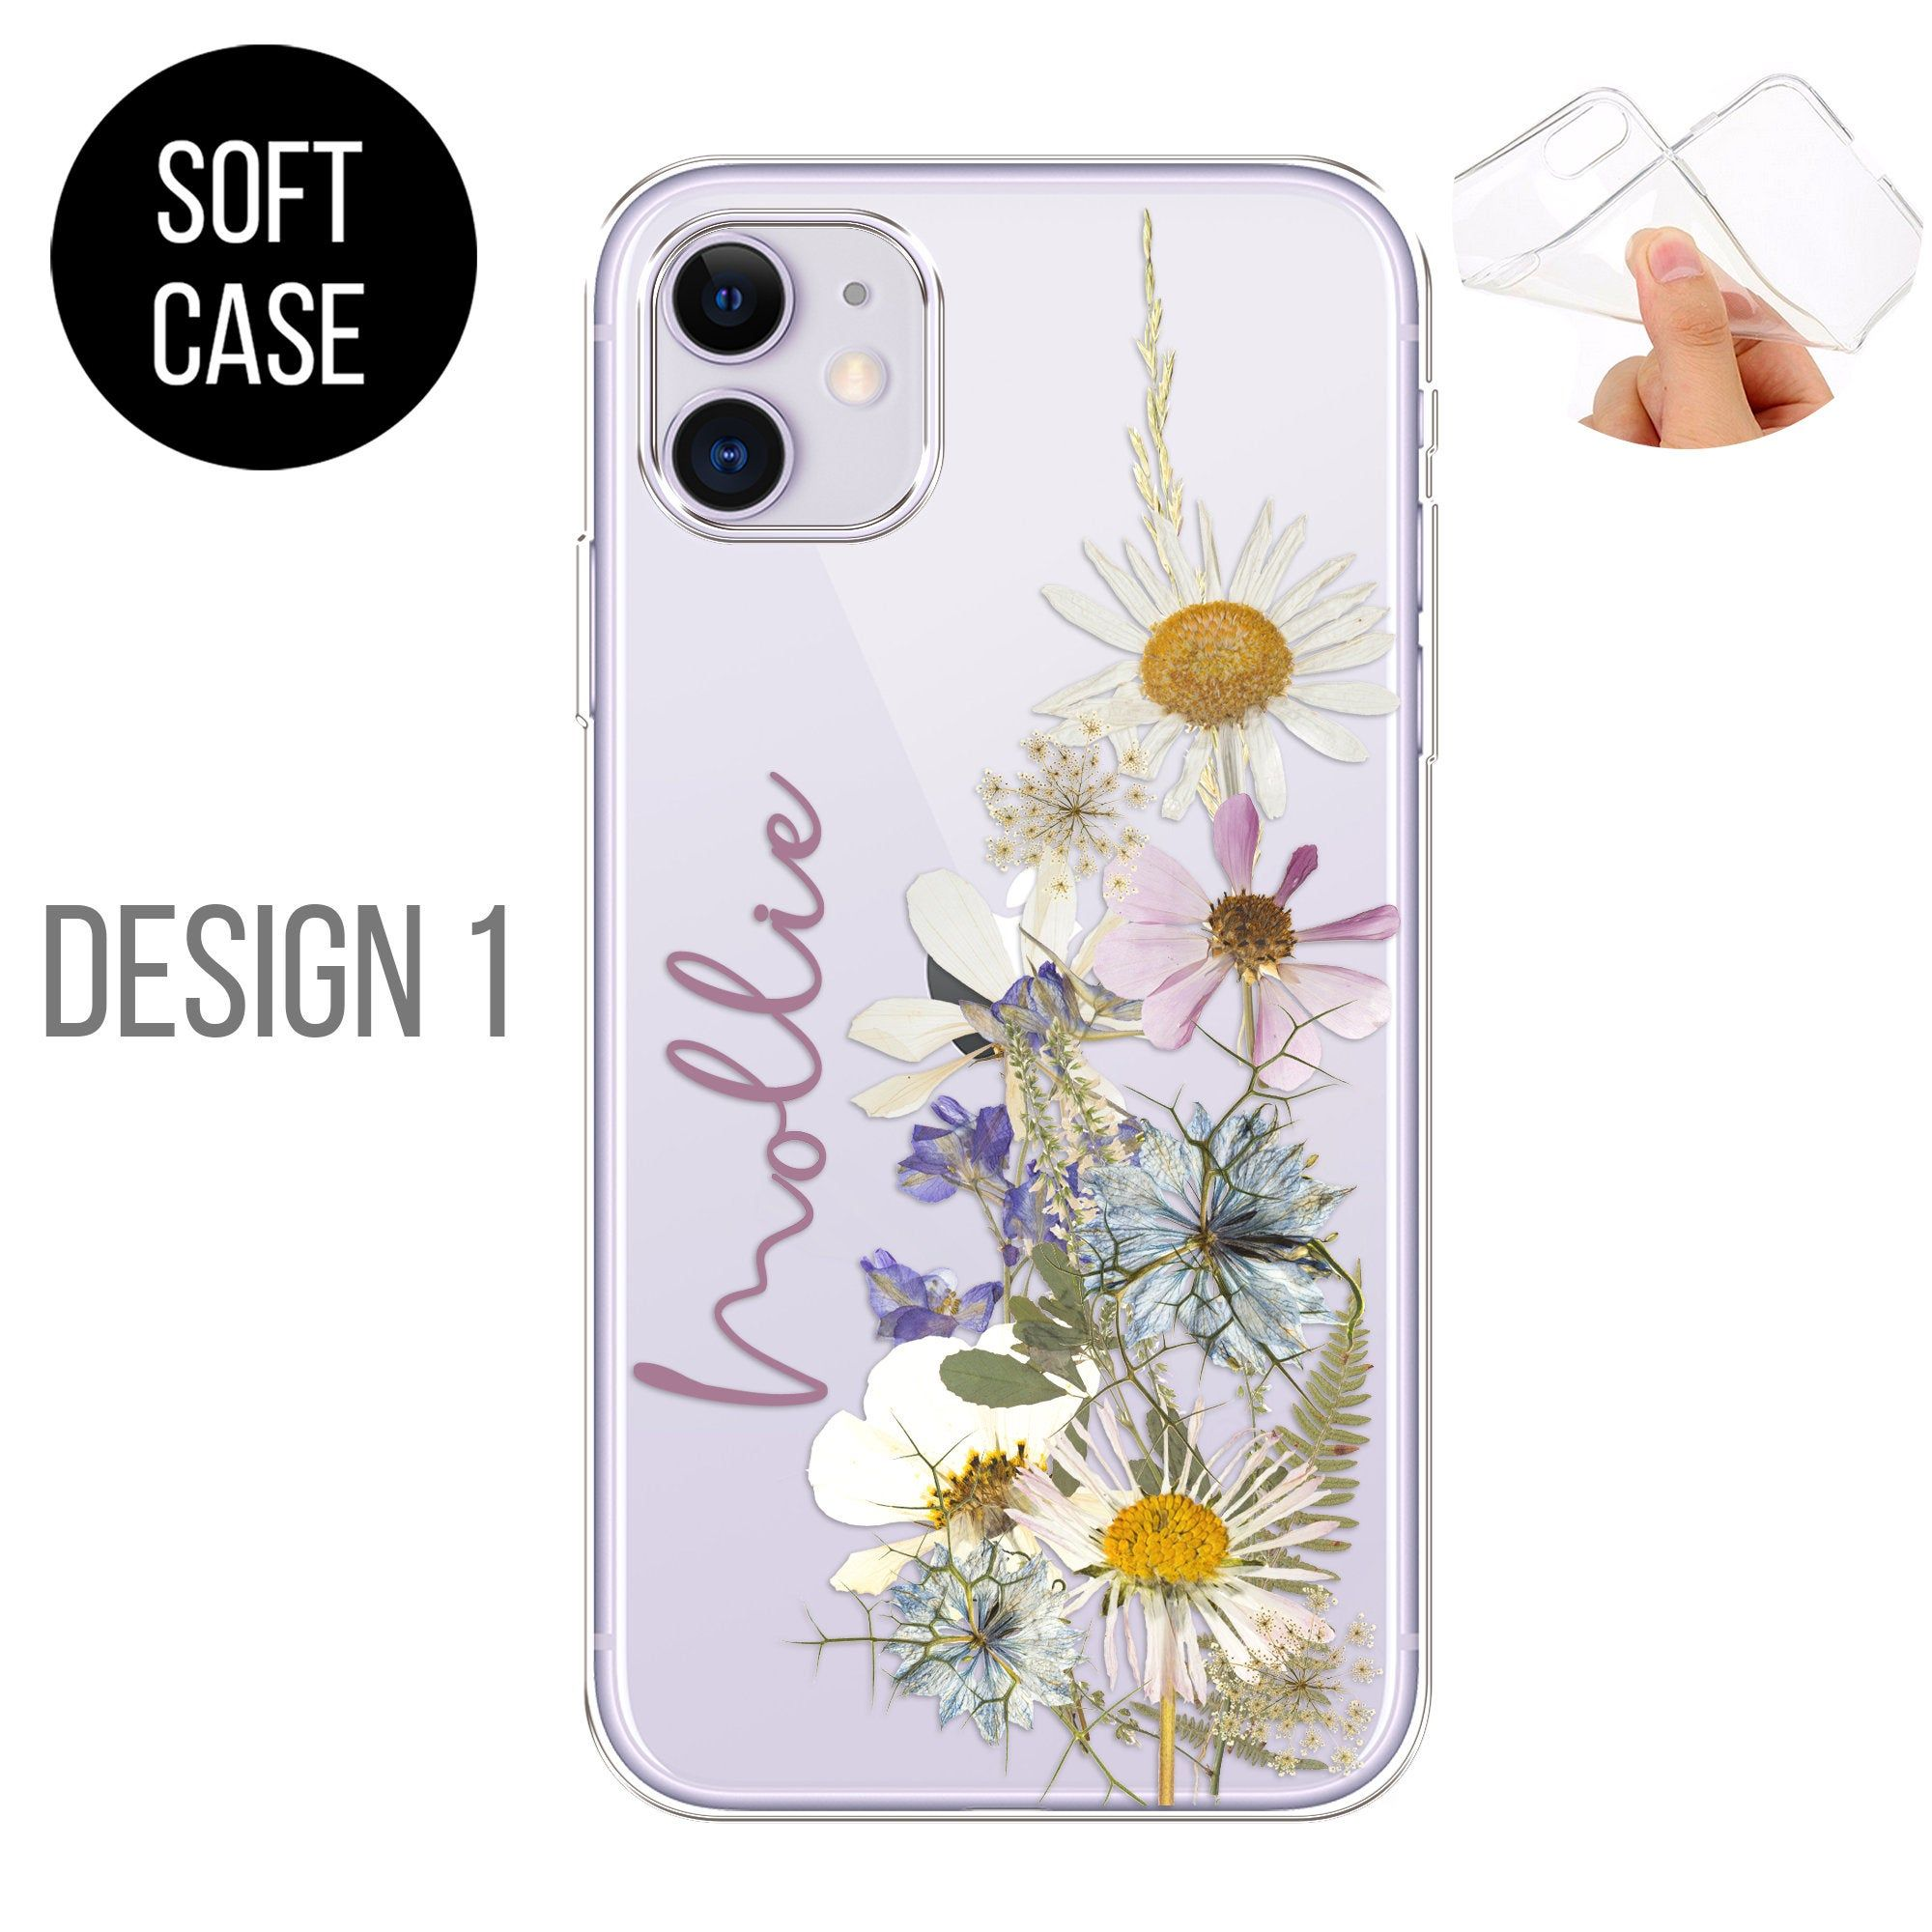 PERSONALISED phone case initials name silicone flowres cover for apple iphone SE 2020 6 6s Plus 7 8 X Xs max Xr 11 Pro Max iPhone 12 Pro Max